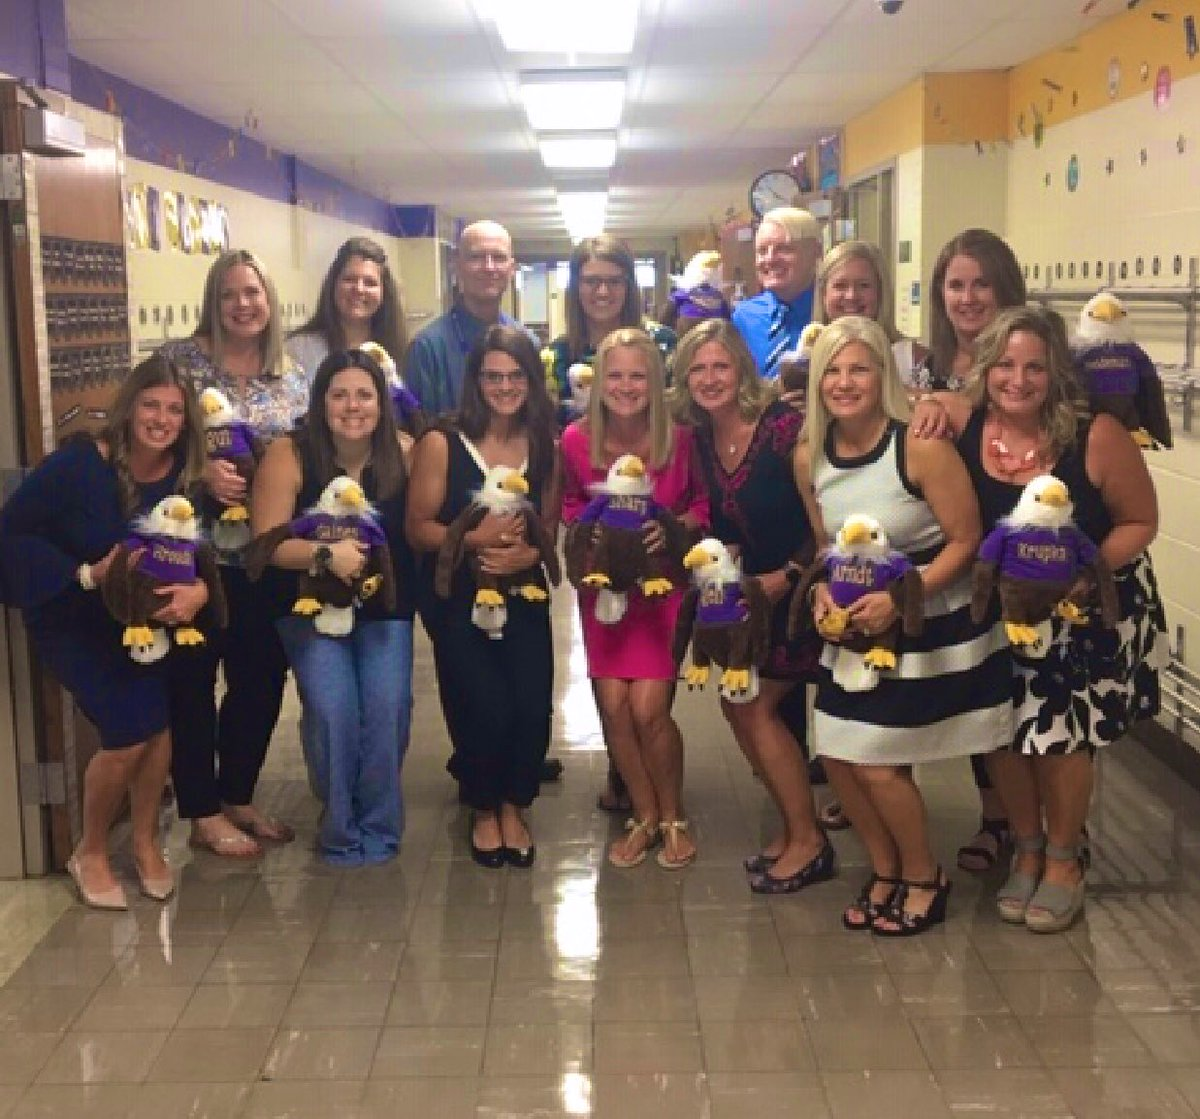 After a successful Open House, our first and second grade teachers are ready to go (and so are our Eagles)!!! We can't wait to see you all on Thursday #AvonInspires<br>http://pic.twitter.com/7hEcrMYLKa